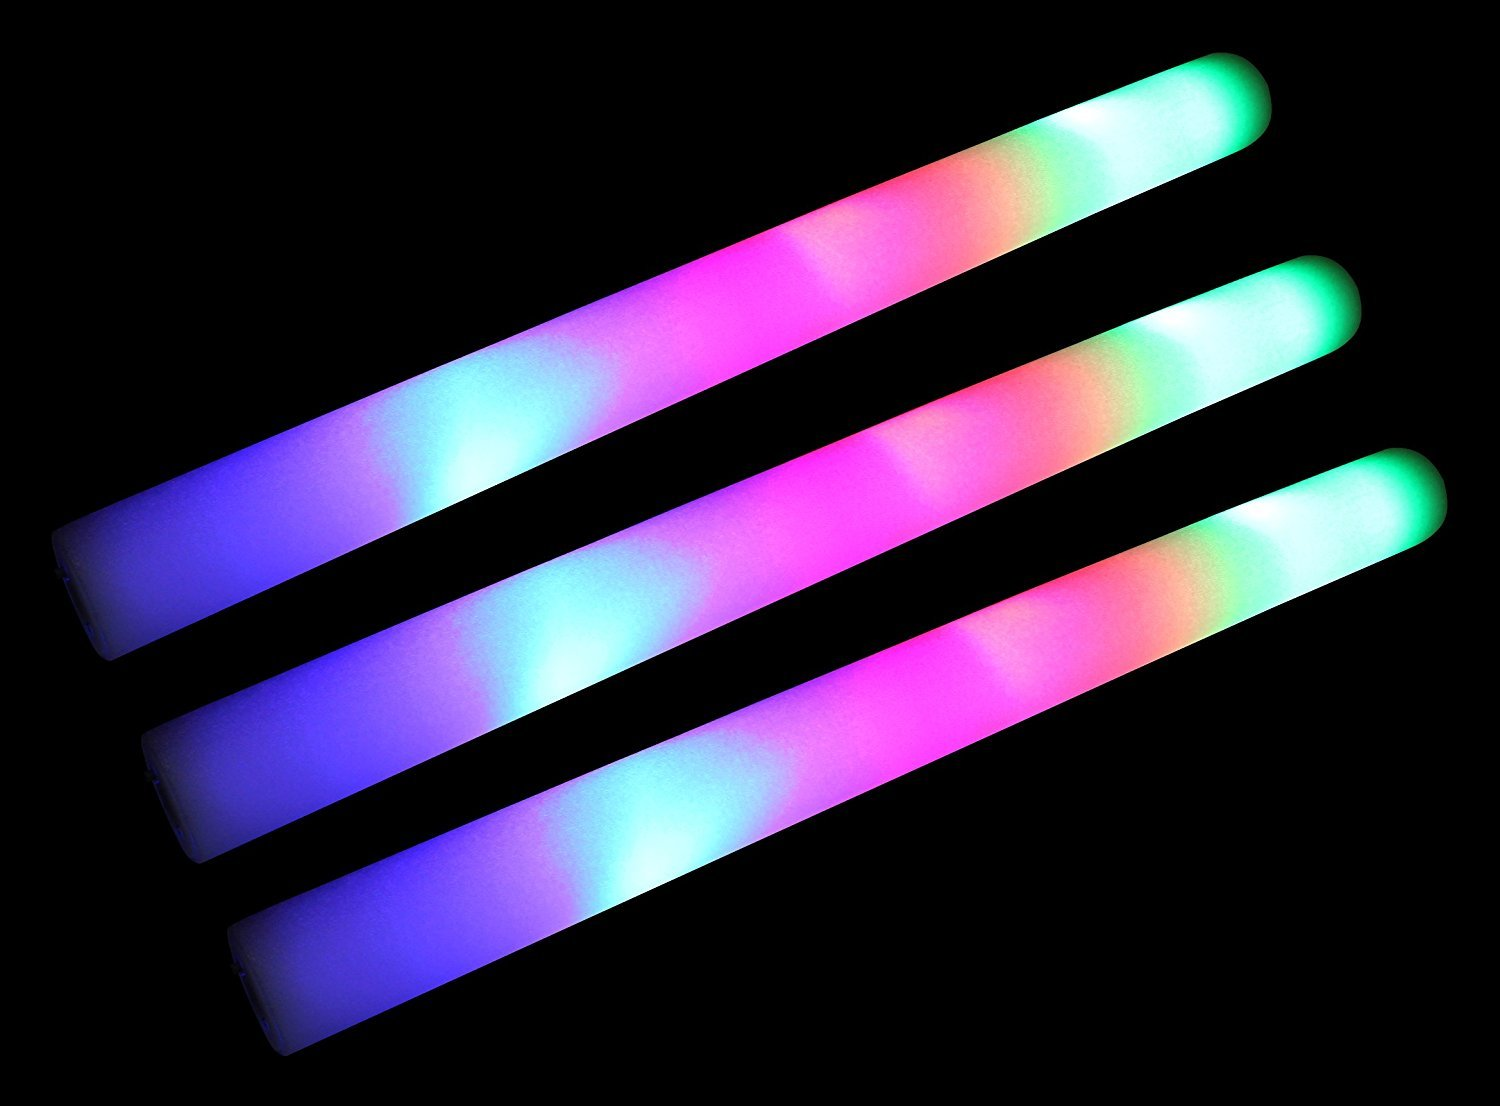 AJ Toys & Games 200 PCS Pack of 18 Multi Color Foam Baton LED Light Sticks - Multicolor Color Changing Rally Foam 3 Model Flashing by AJ Toys & Games (Image #1)